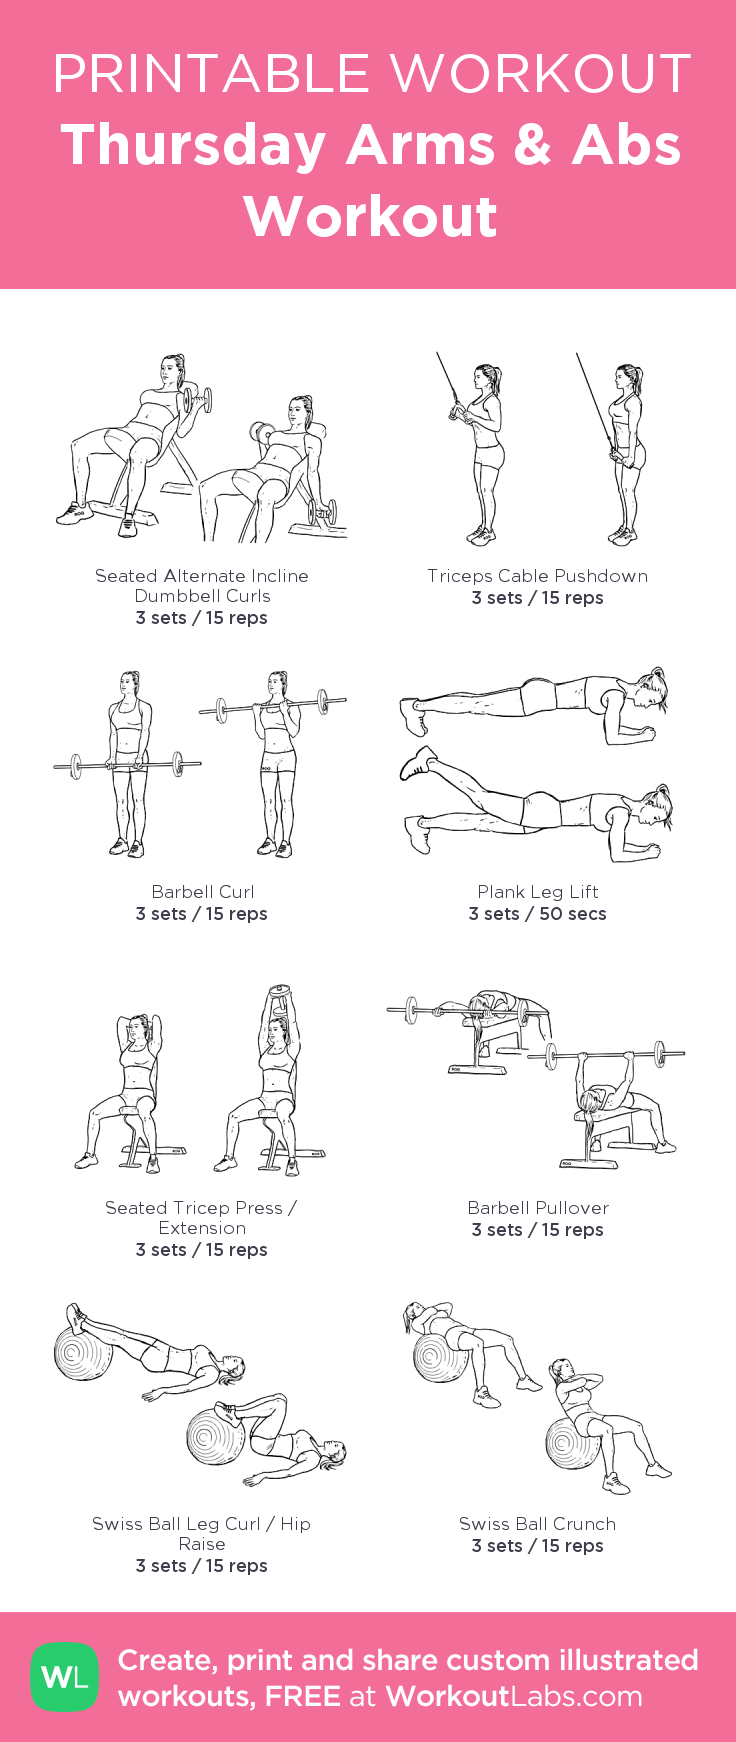 Thursday Arms Abs Workout: my custom printable workout by